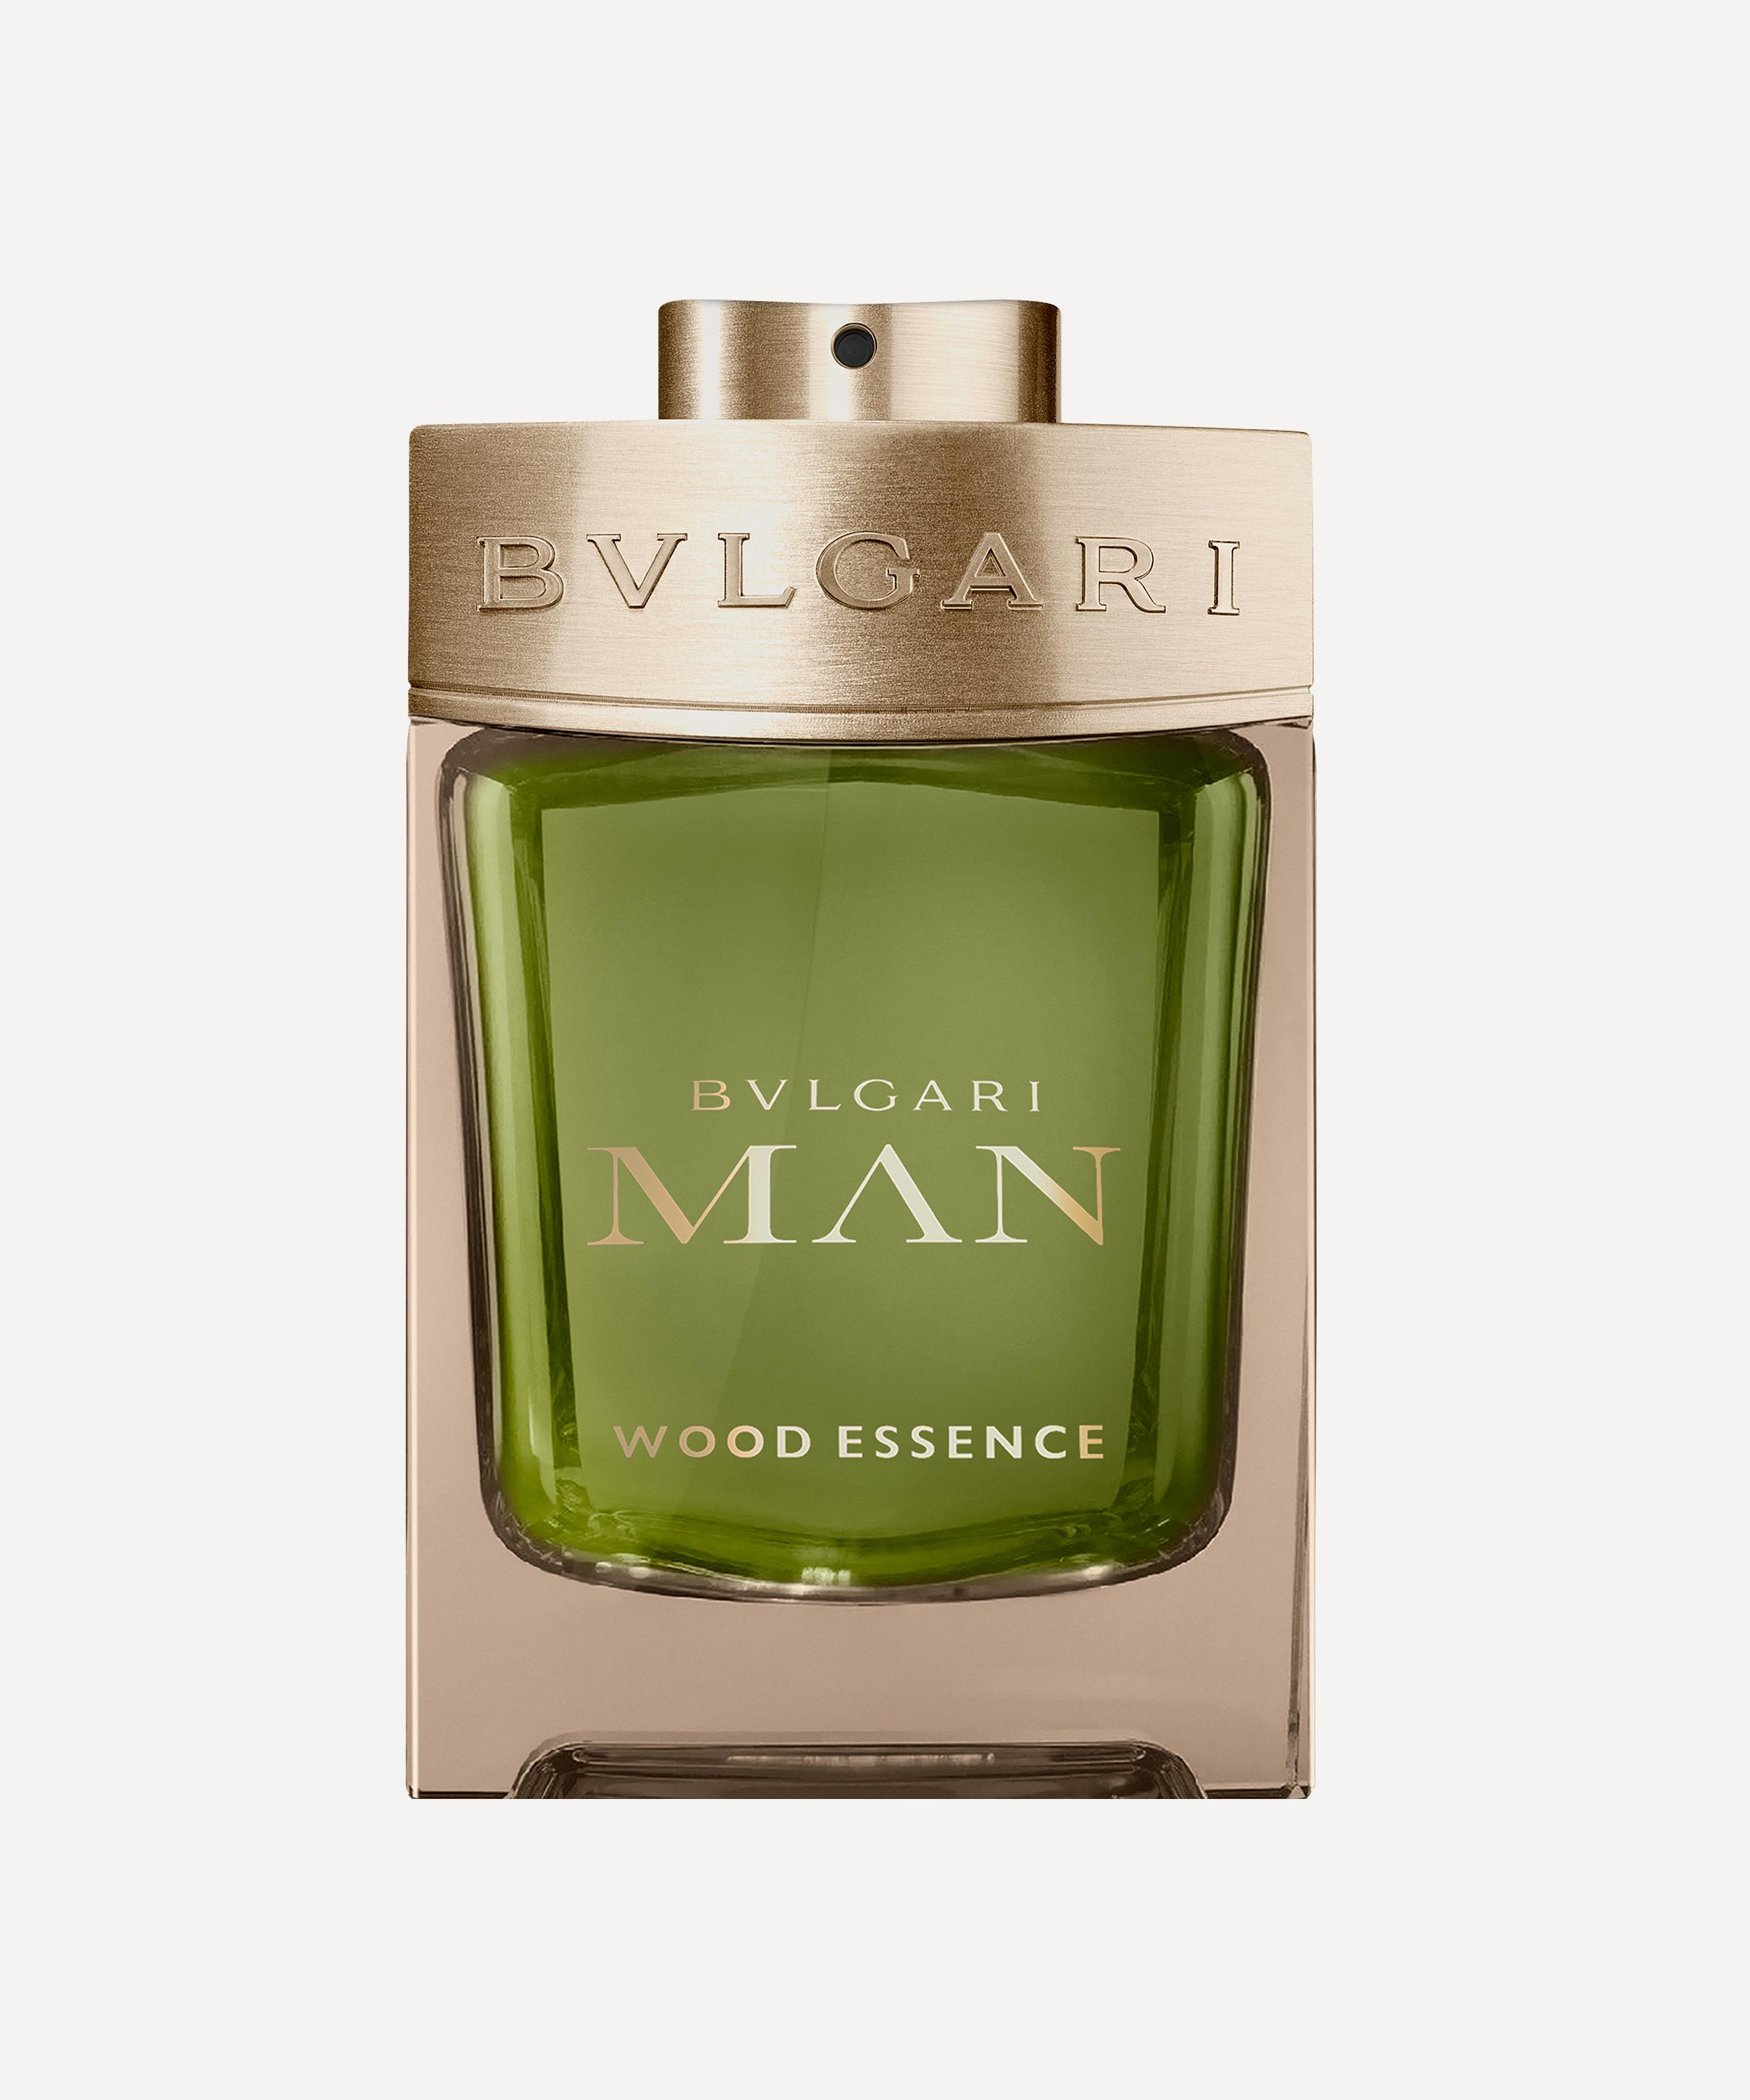 Bvlgari Man Wood Essence Eau De Parfum 100ml Liberty London